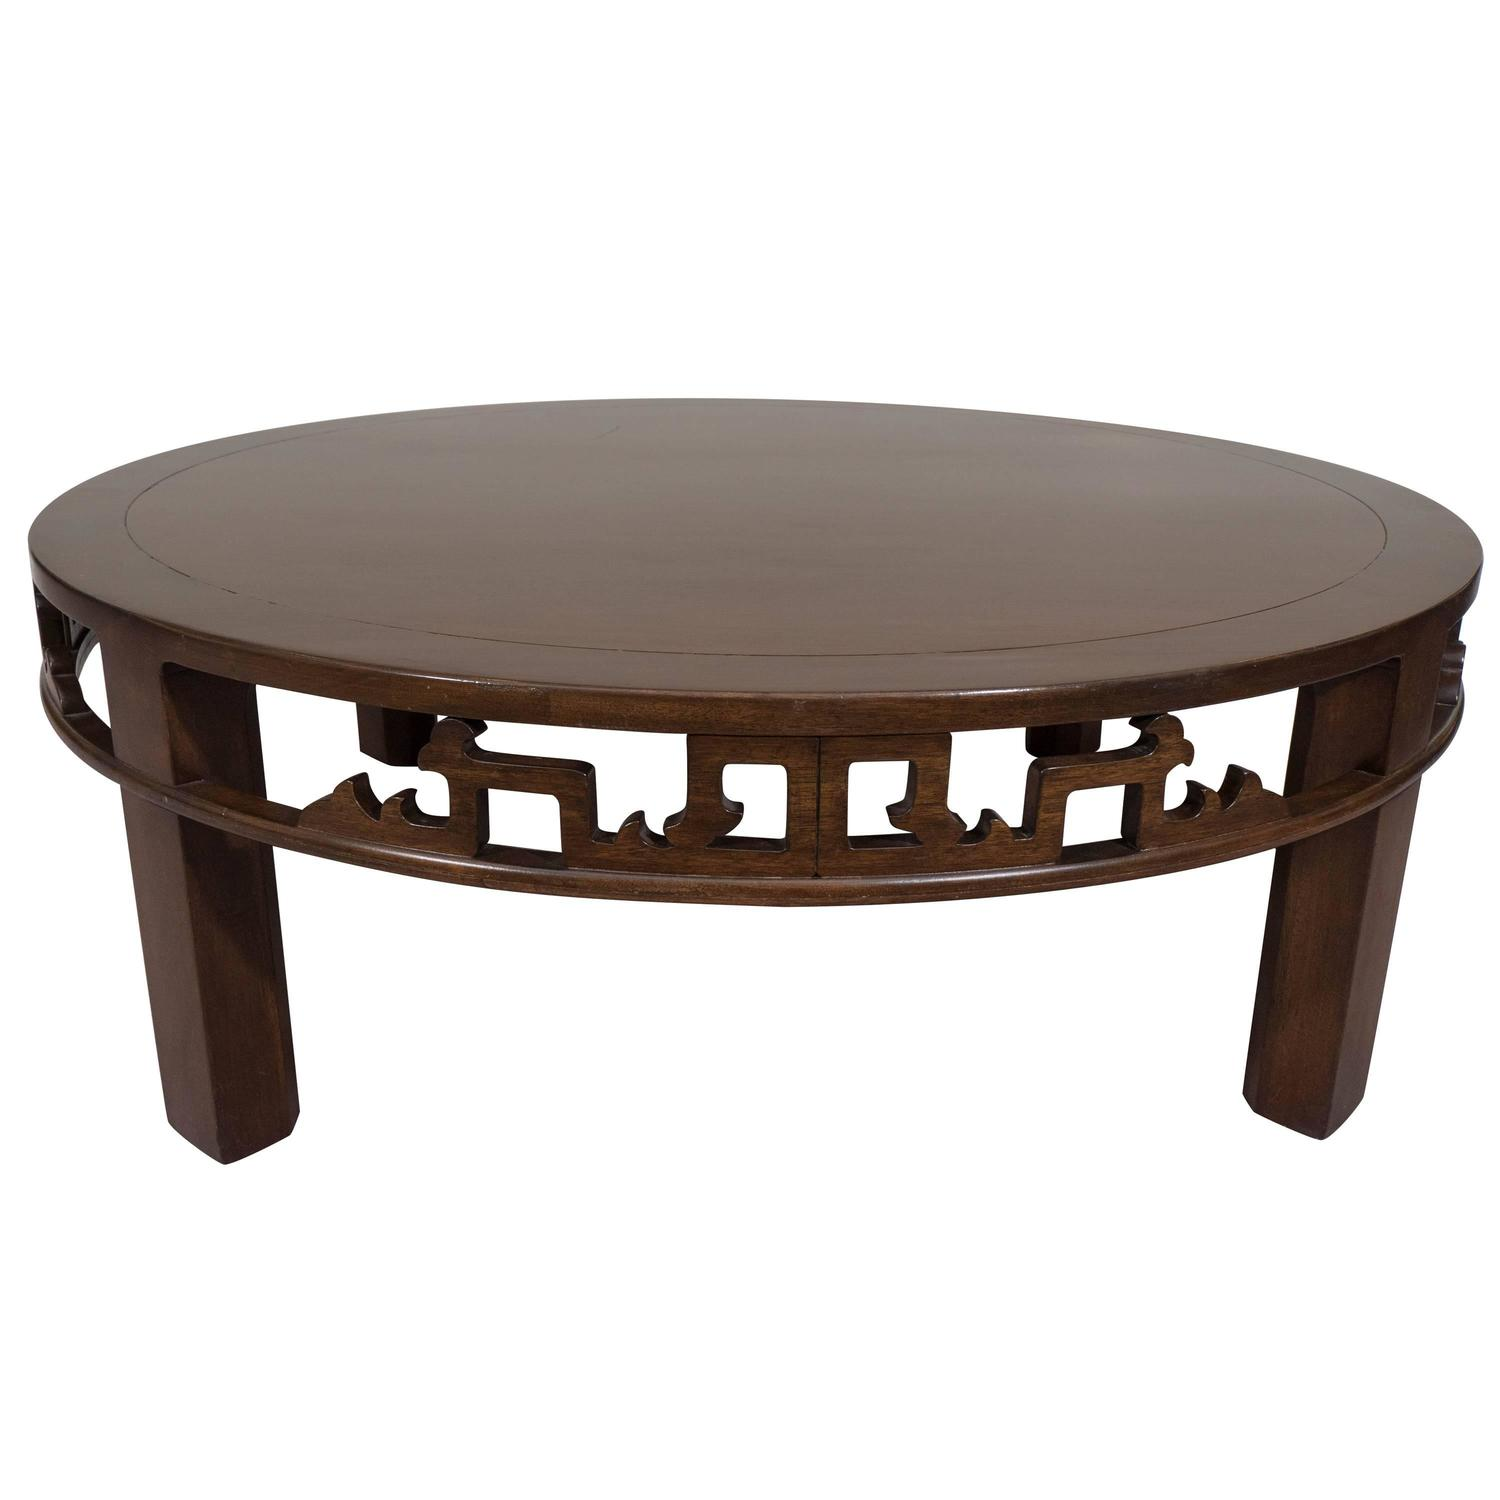 Vintage Baker Coffee Tables: Baker Furniture Asian Inspired Round Coffee Table For Sale